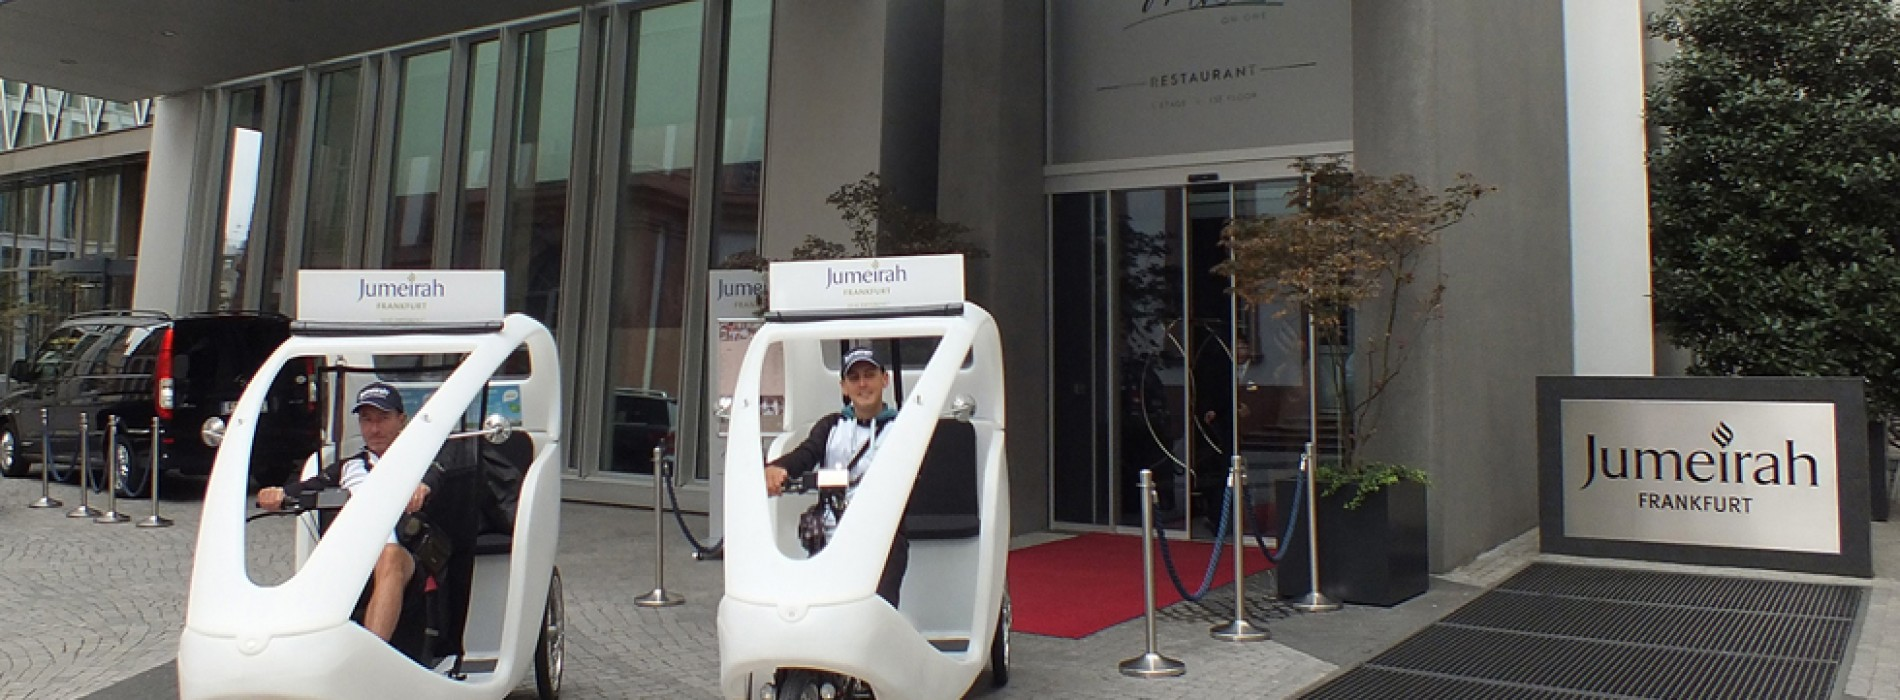 Frankfurt is the ideal destination for a sustainable stay and green mobility